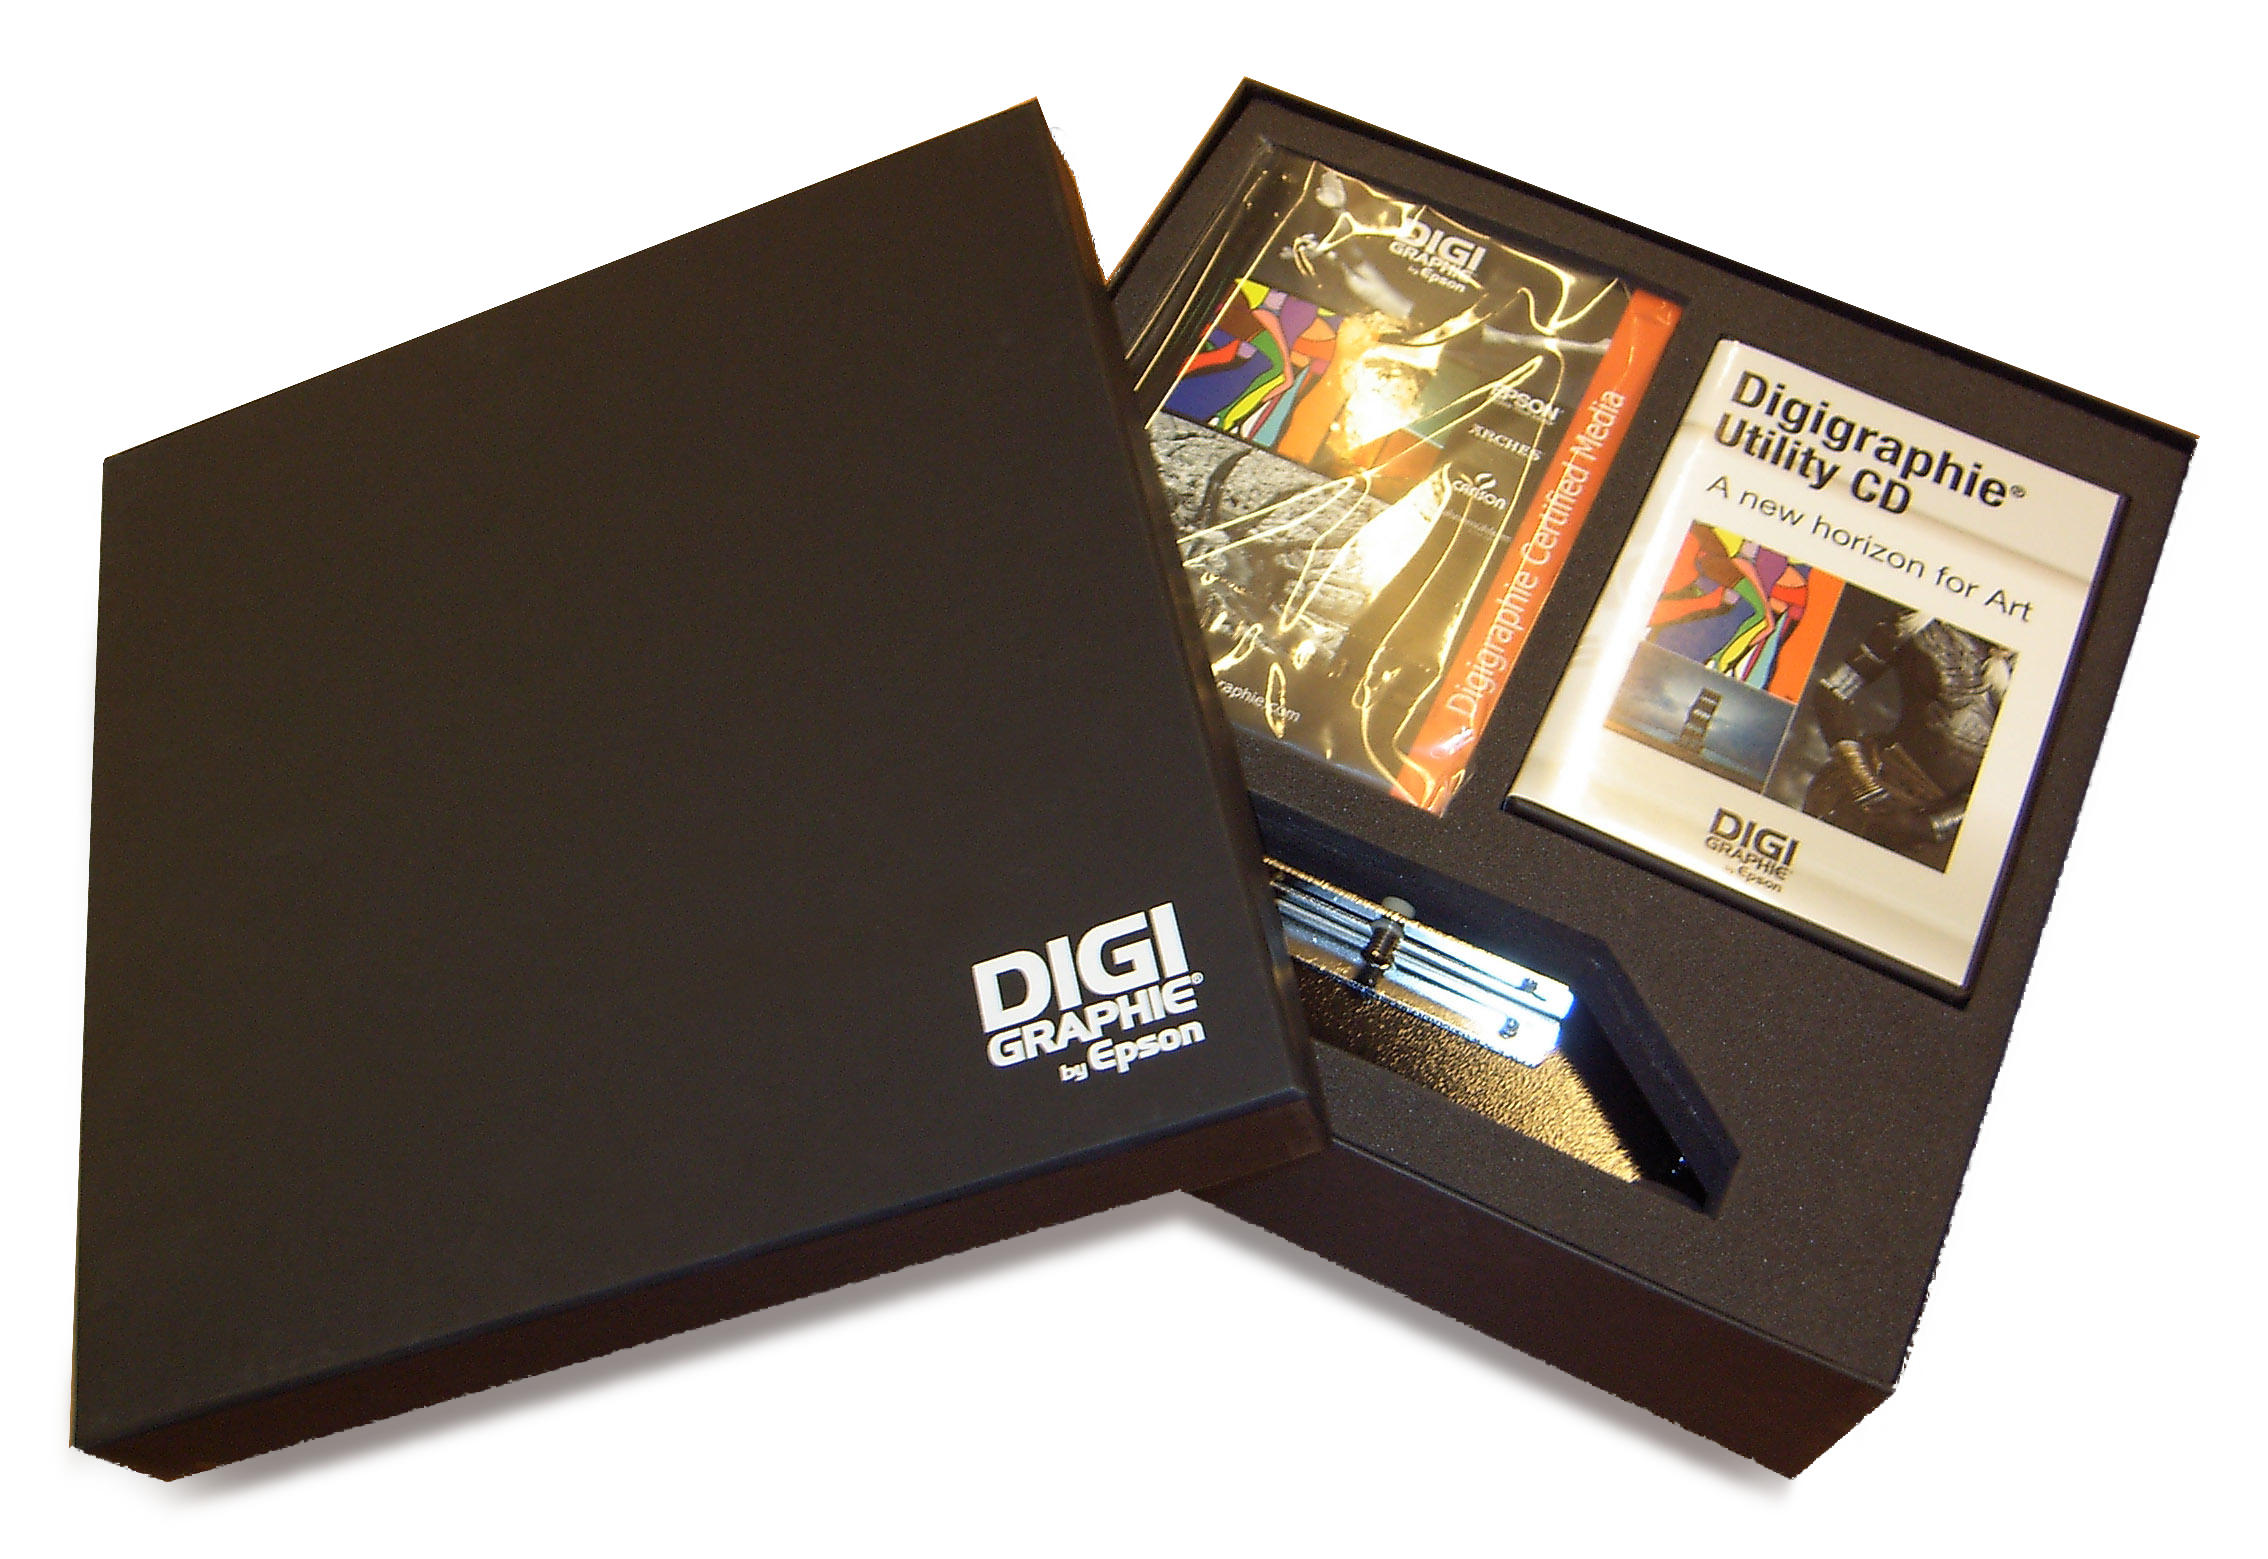 Digibox for Digigraphie Artists